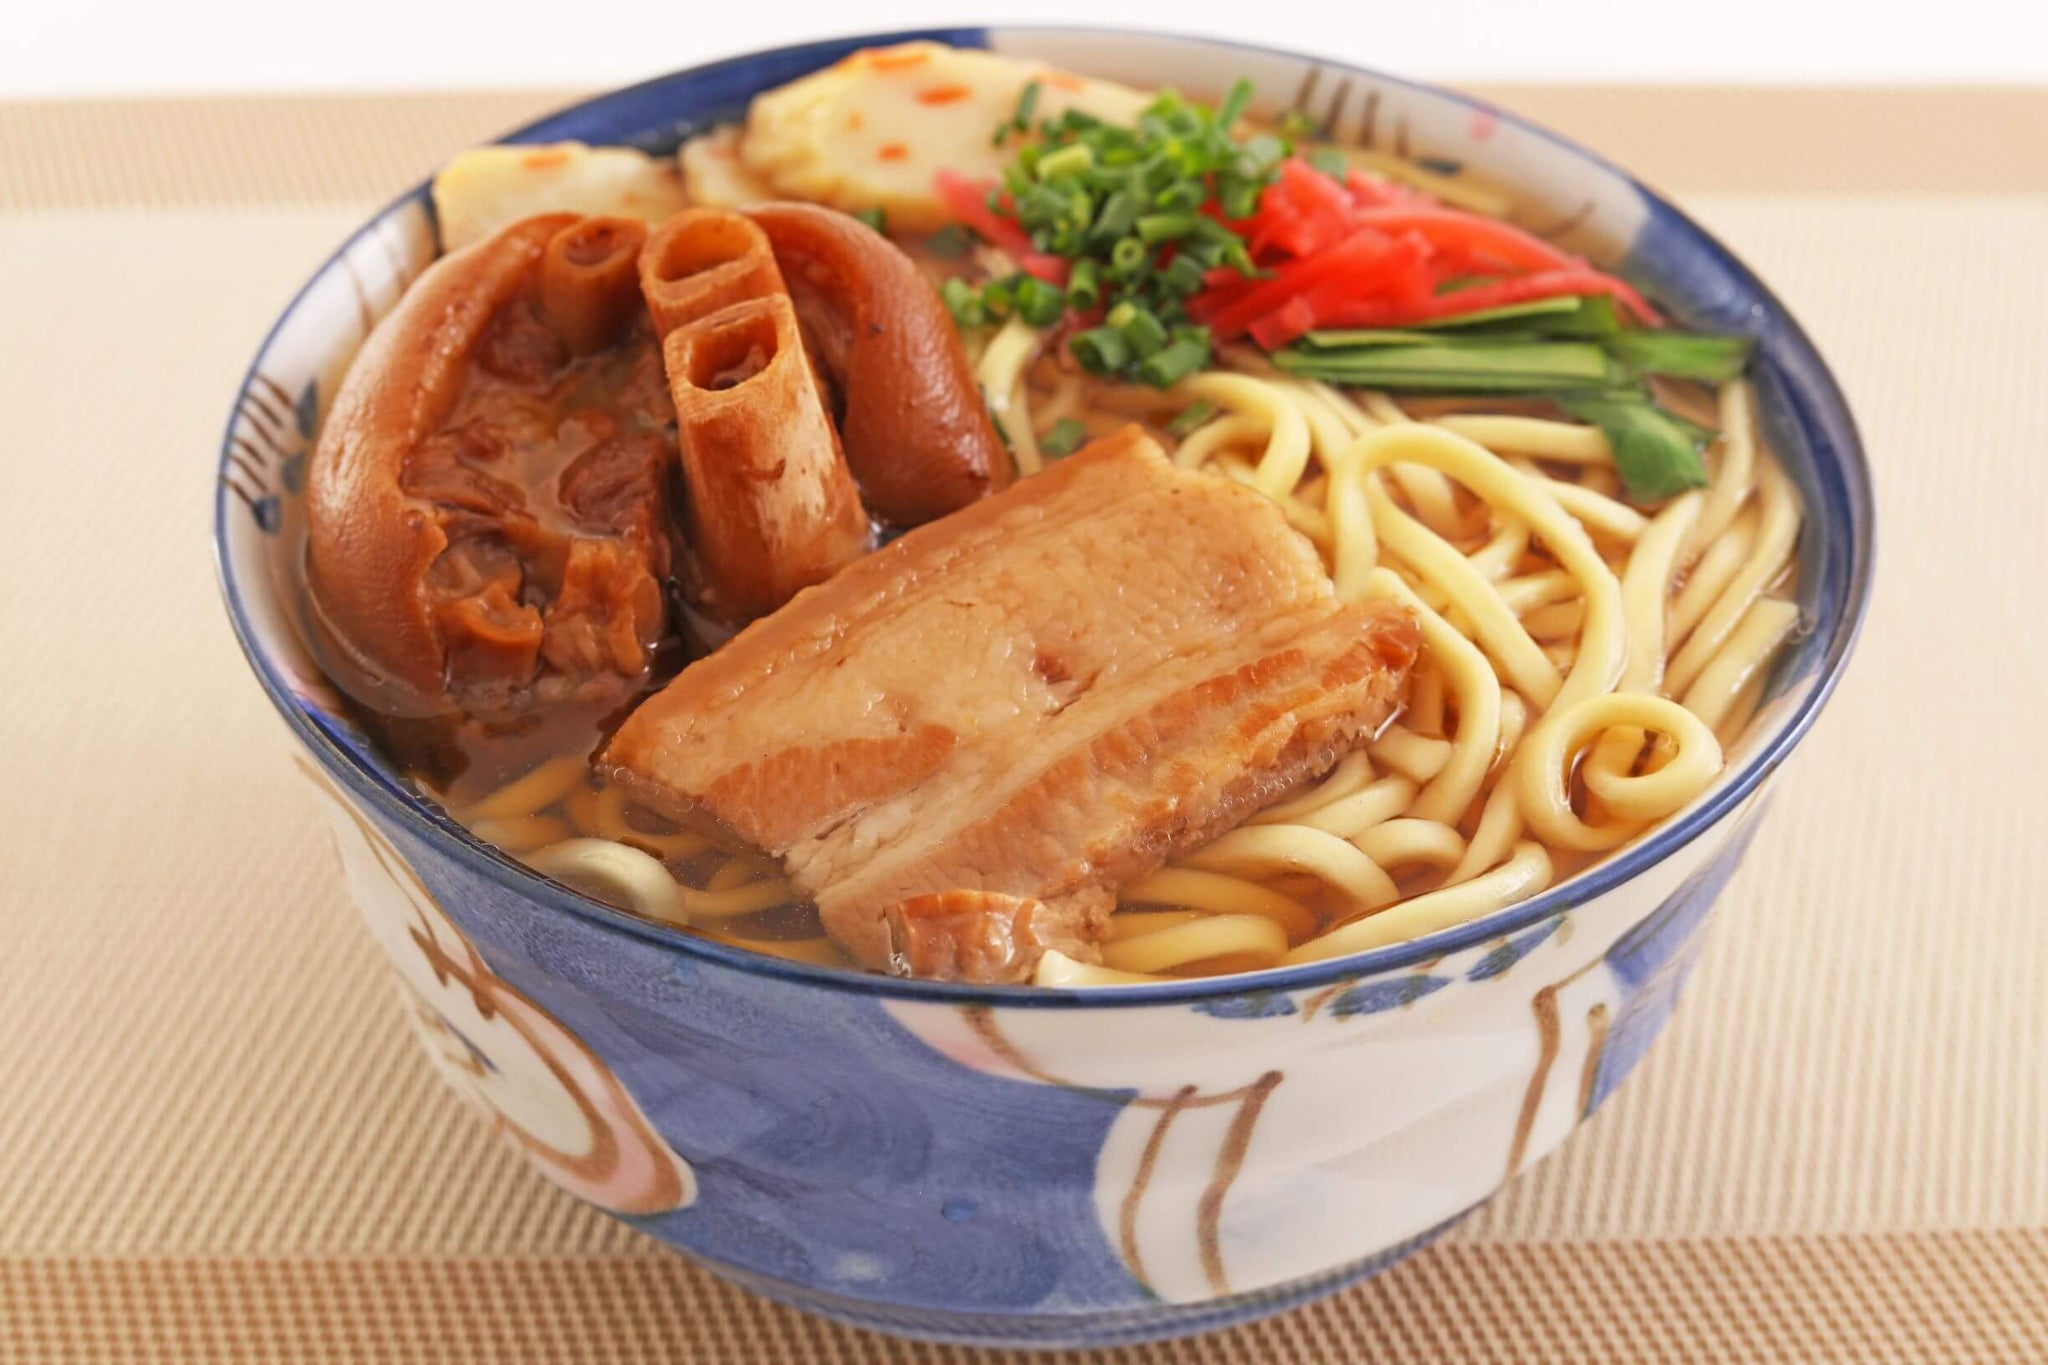 okinawa soba with thick noodles, pig trotter and pork belly